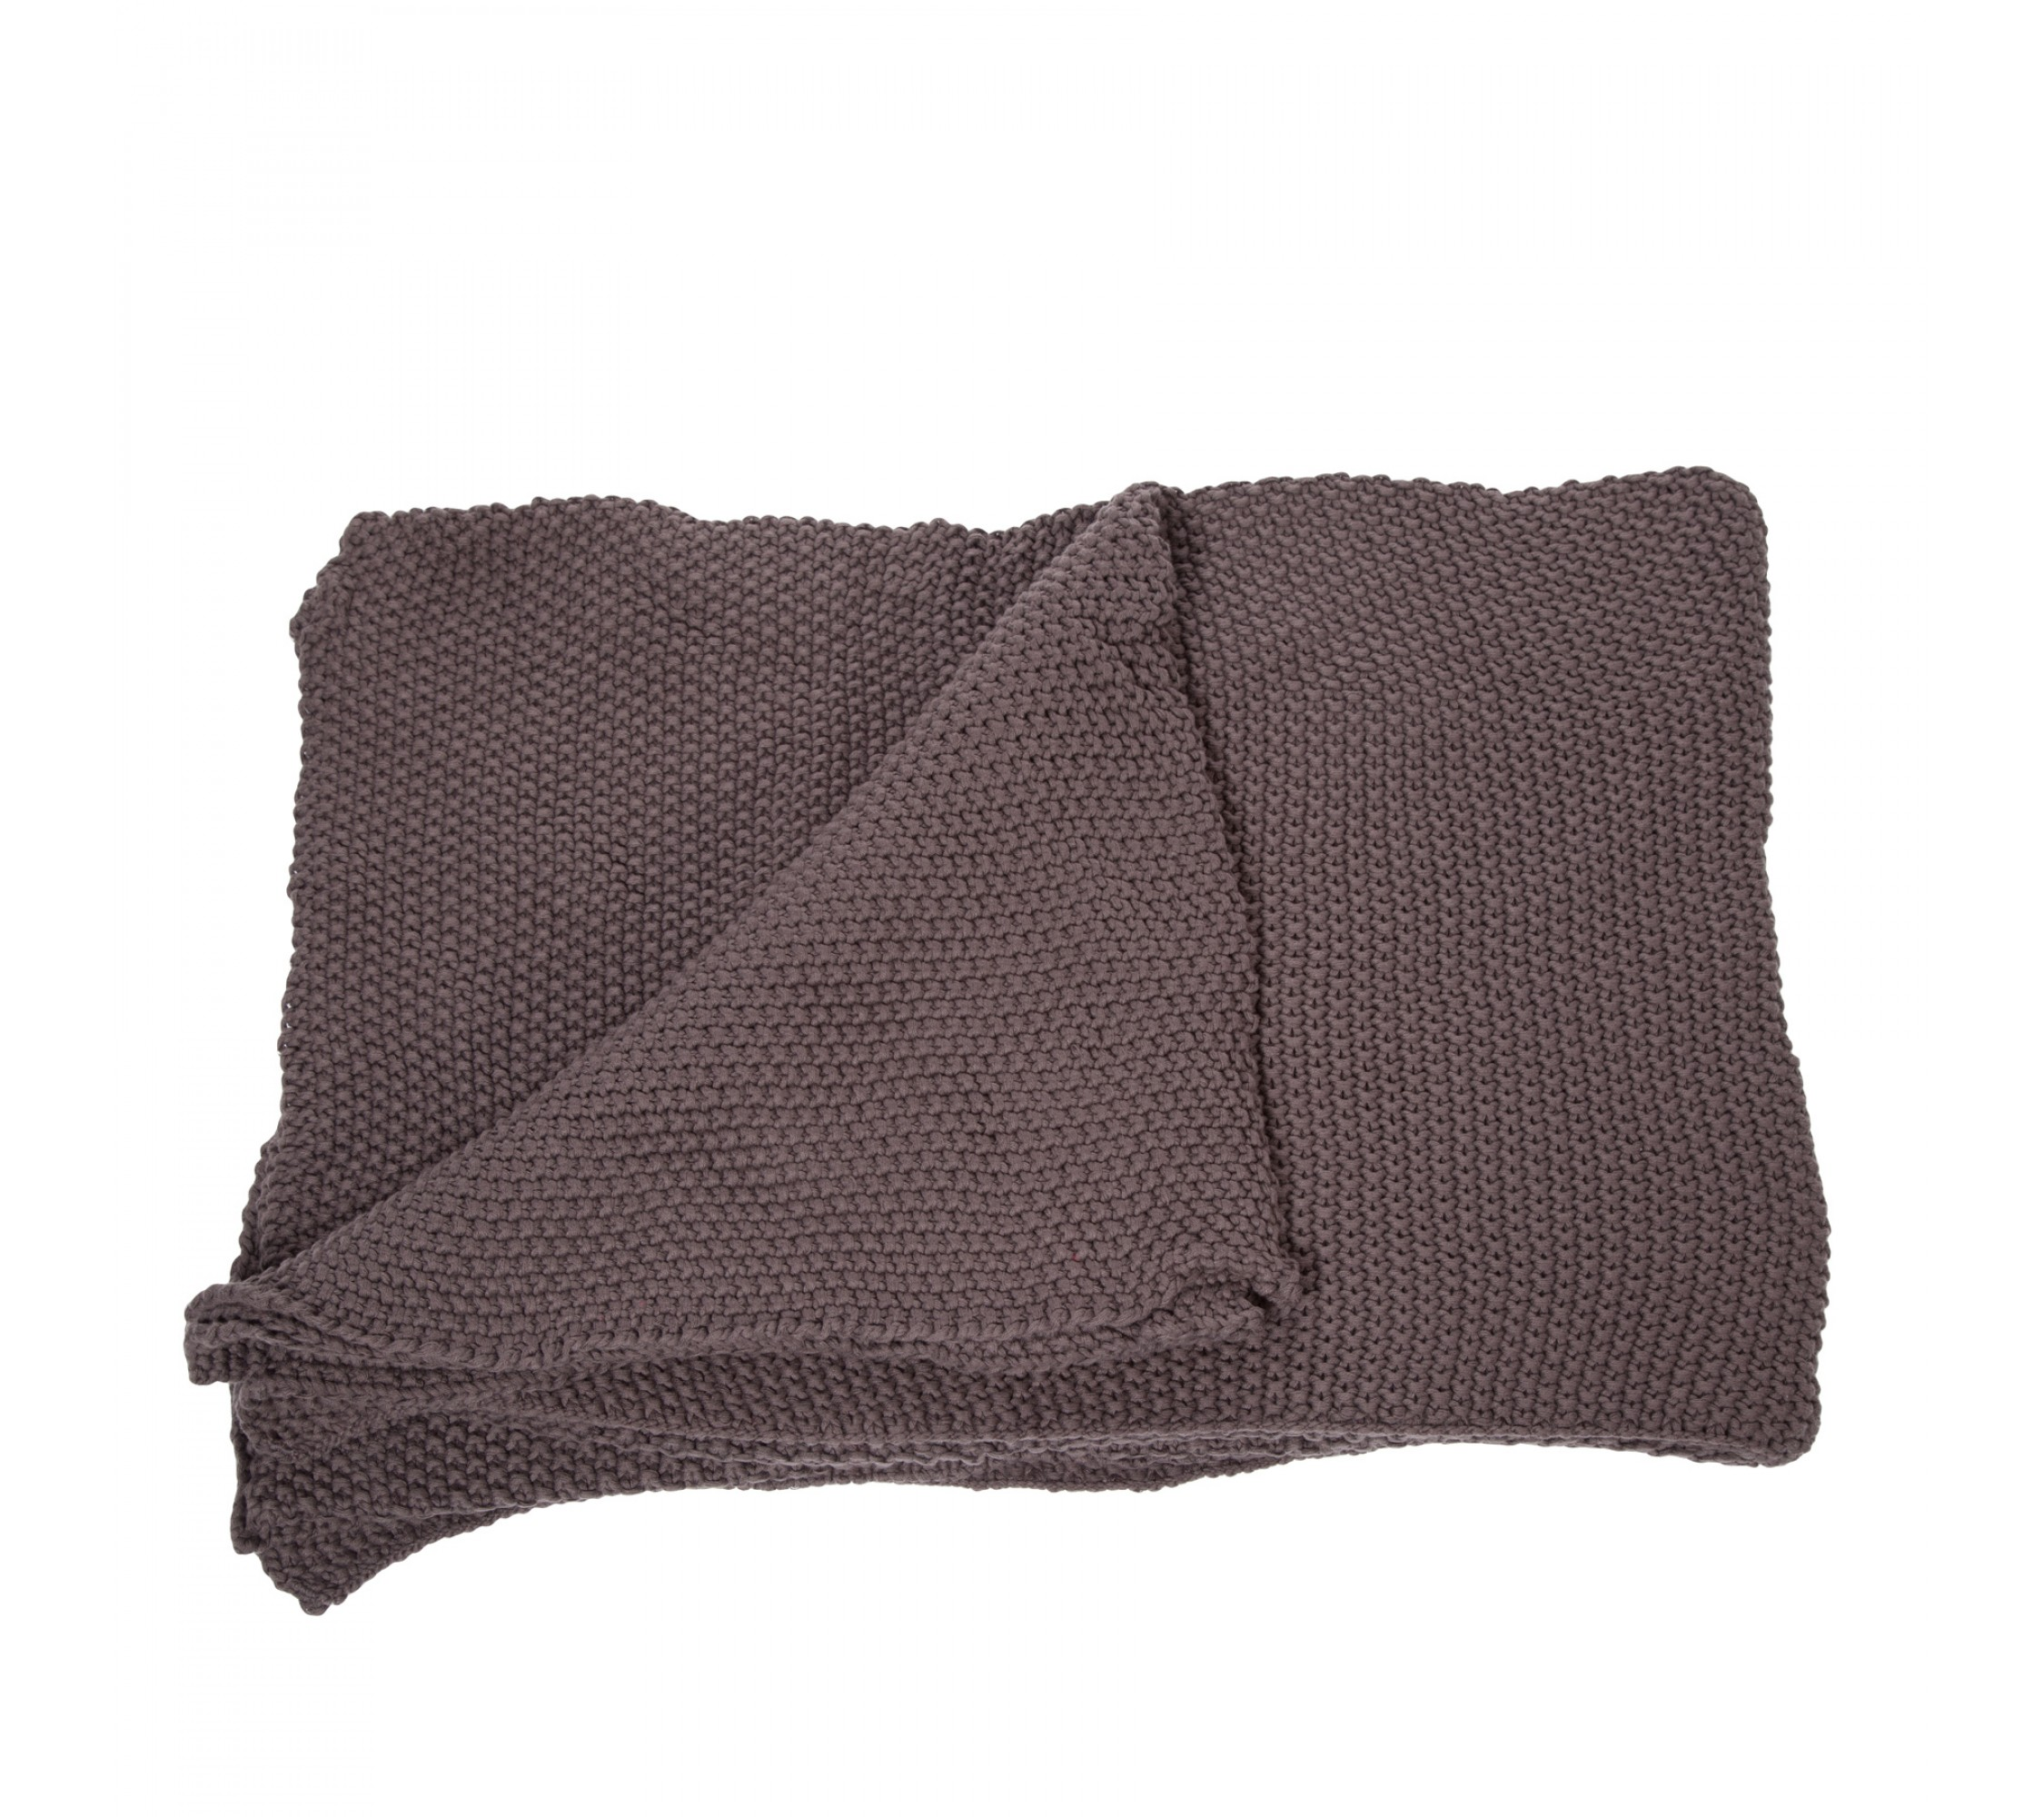 Strickdecke - Moss Throw anthracit